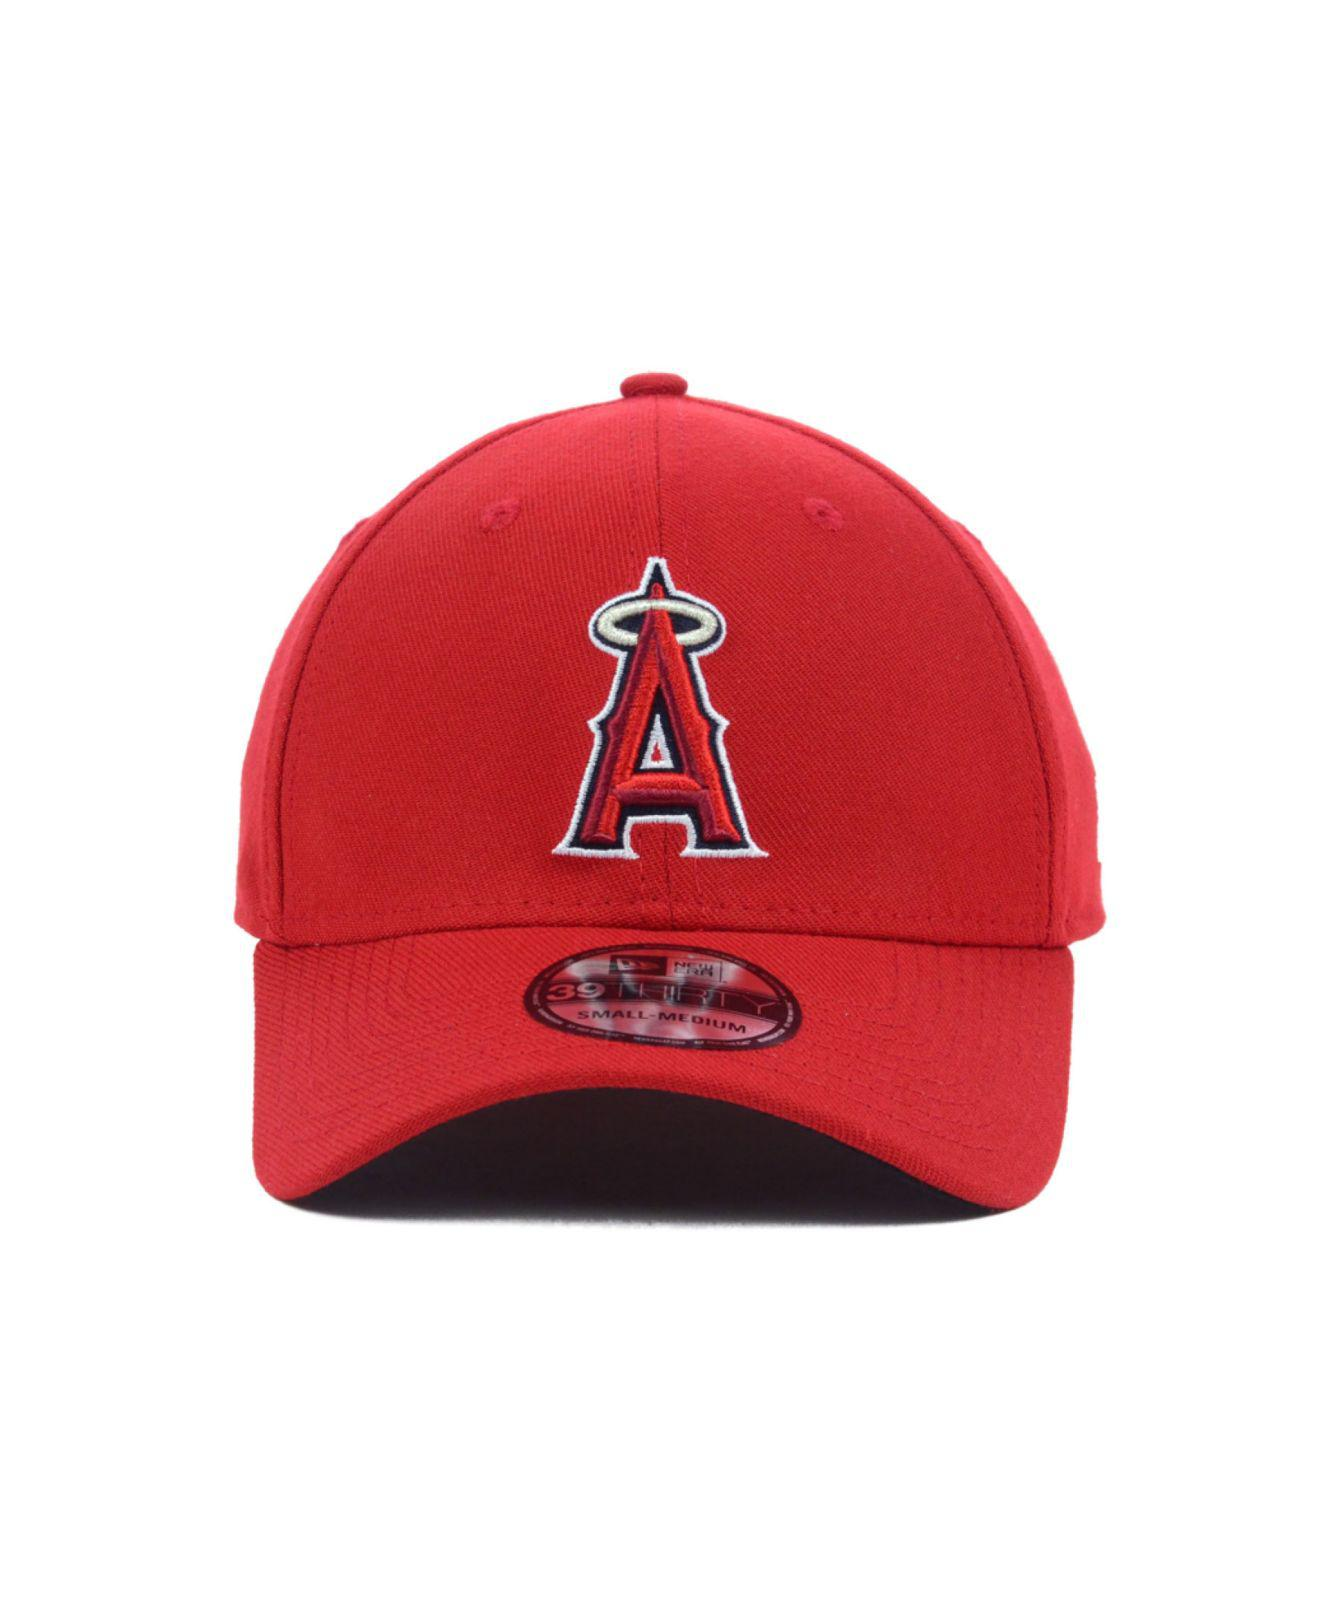 wholesale dealer 11a9f 9ac60 ... netherlands lyst ktz los angeles angels of anaheim mlb team classic  39thirty cap in red for